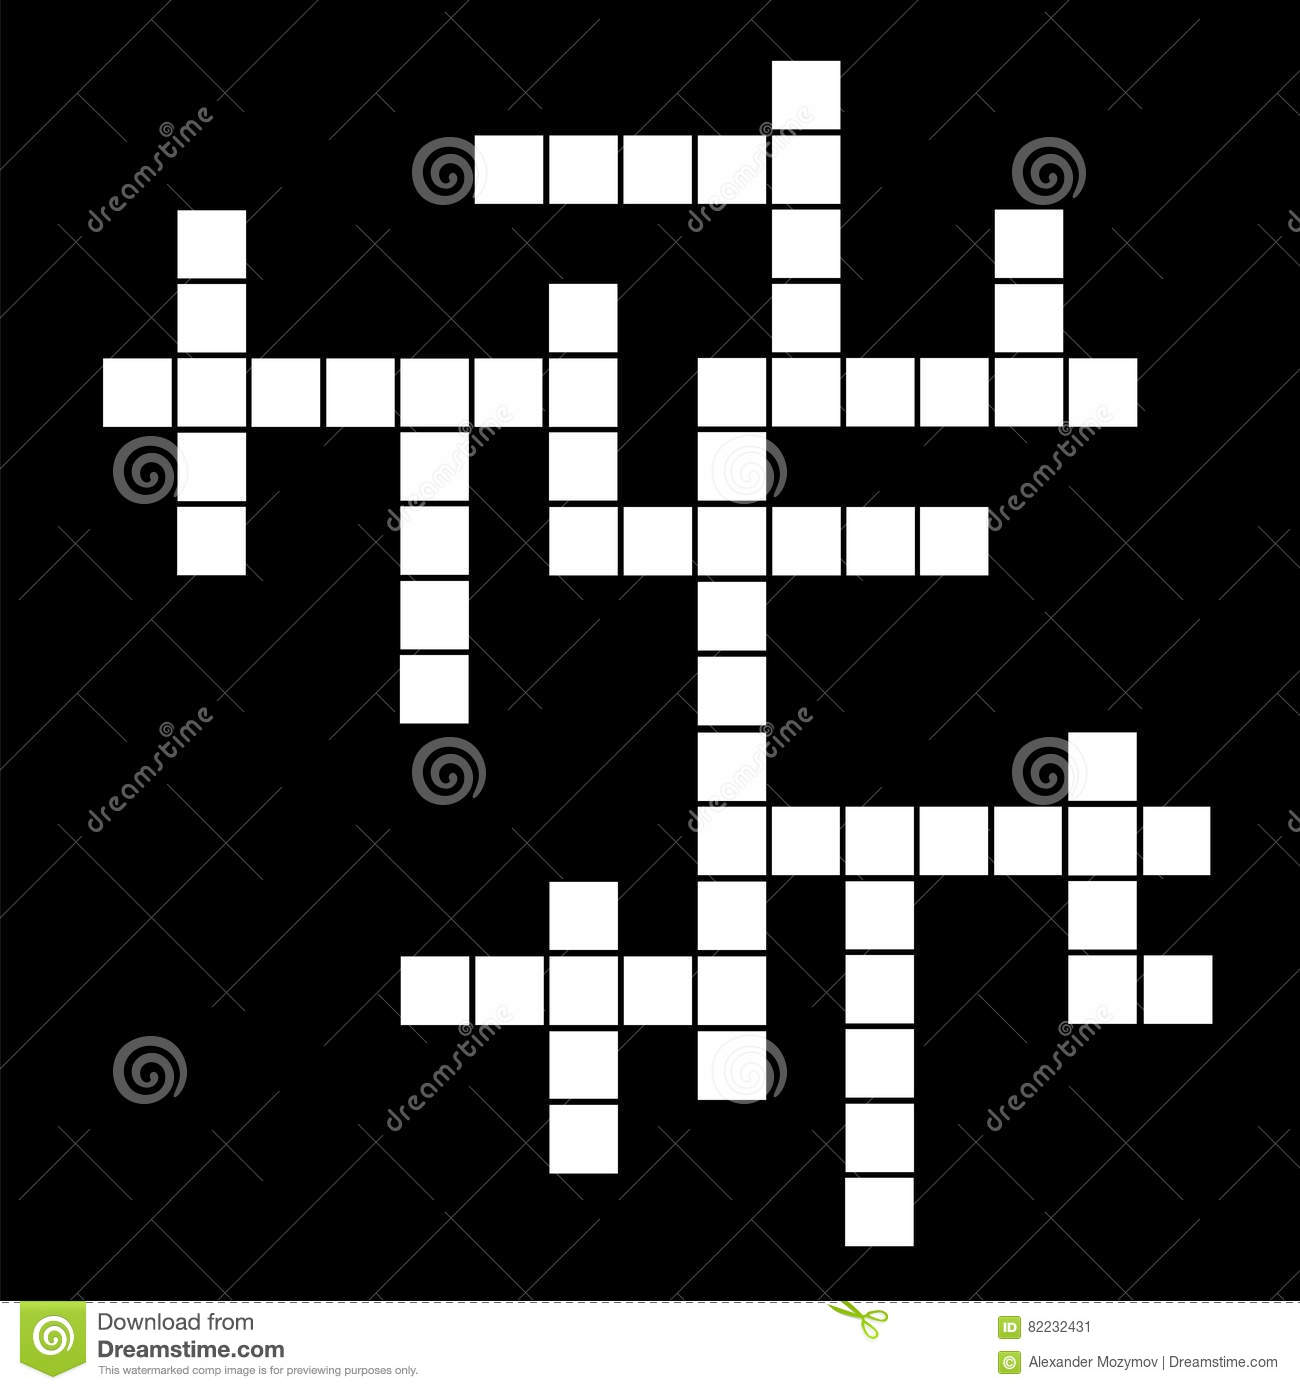 Template Of Crossword Puzzle Stock Vector Illustration Of Isolated